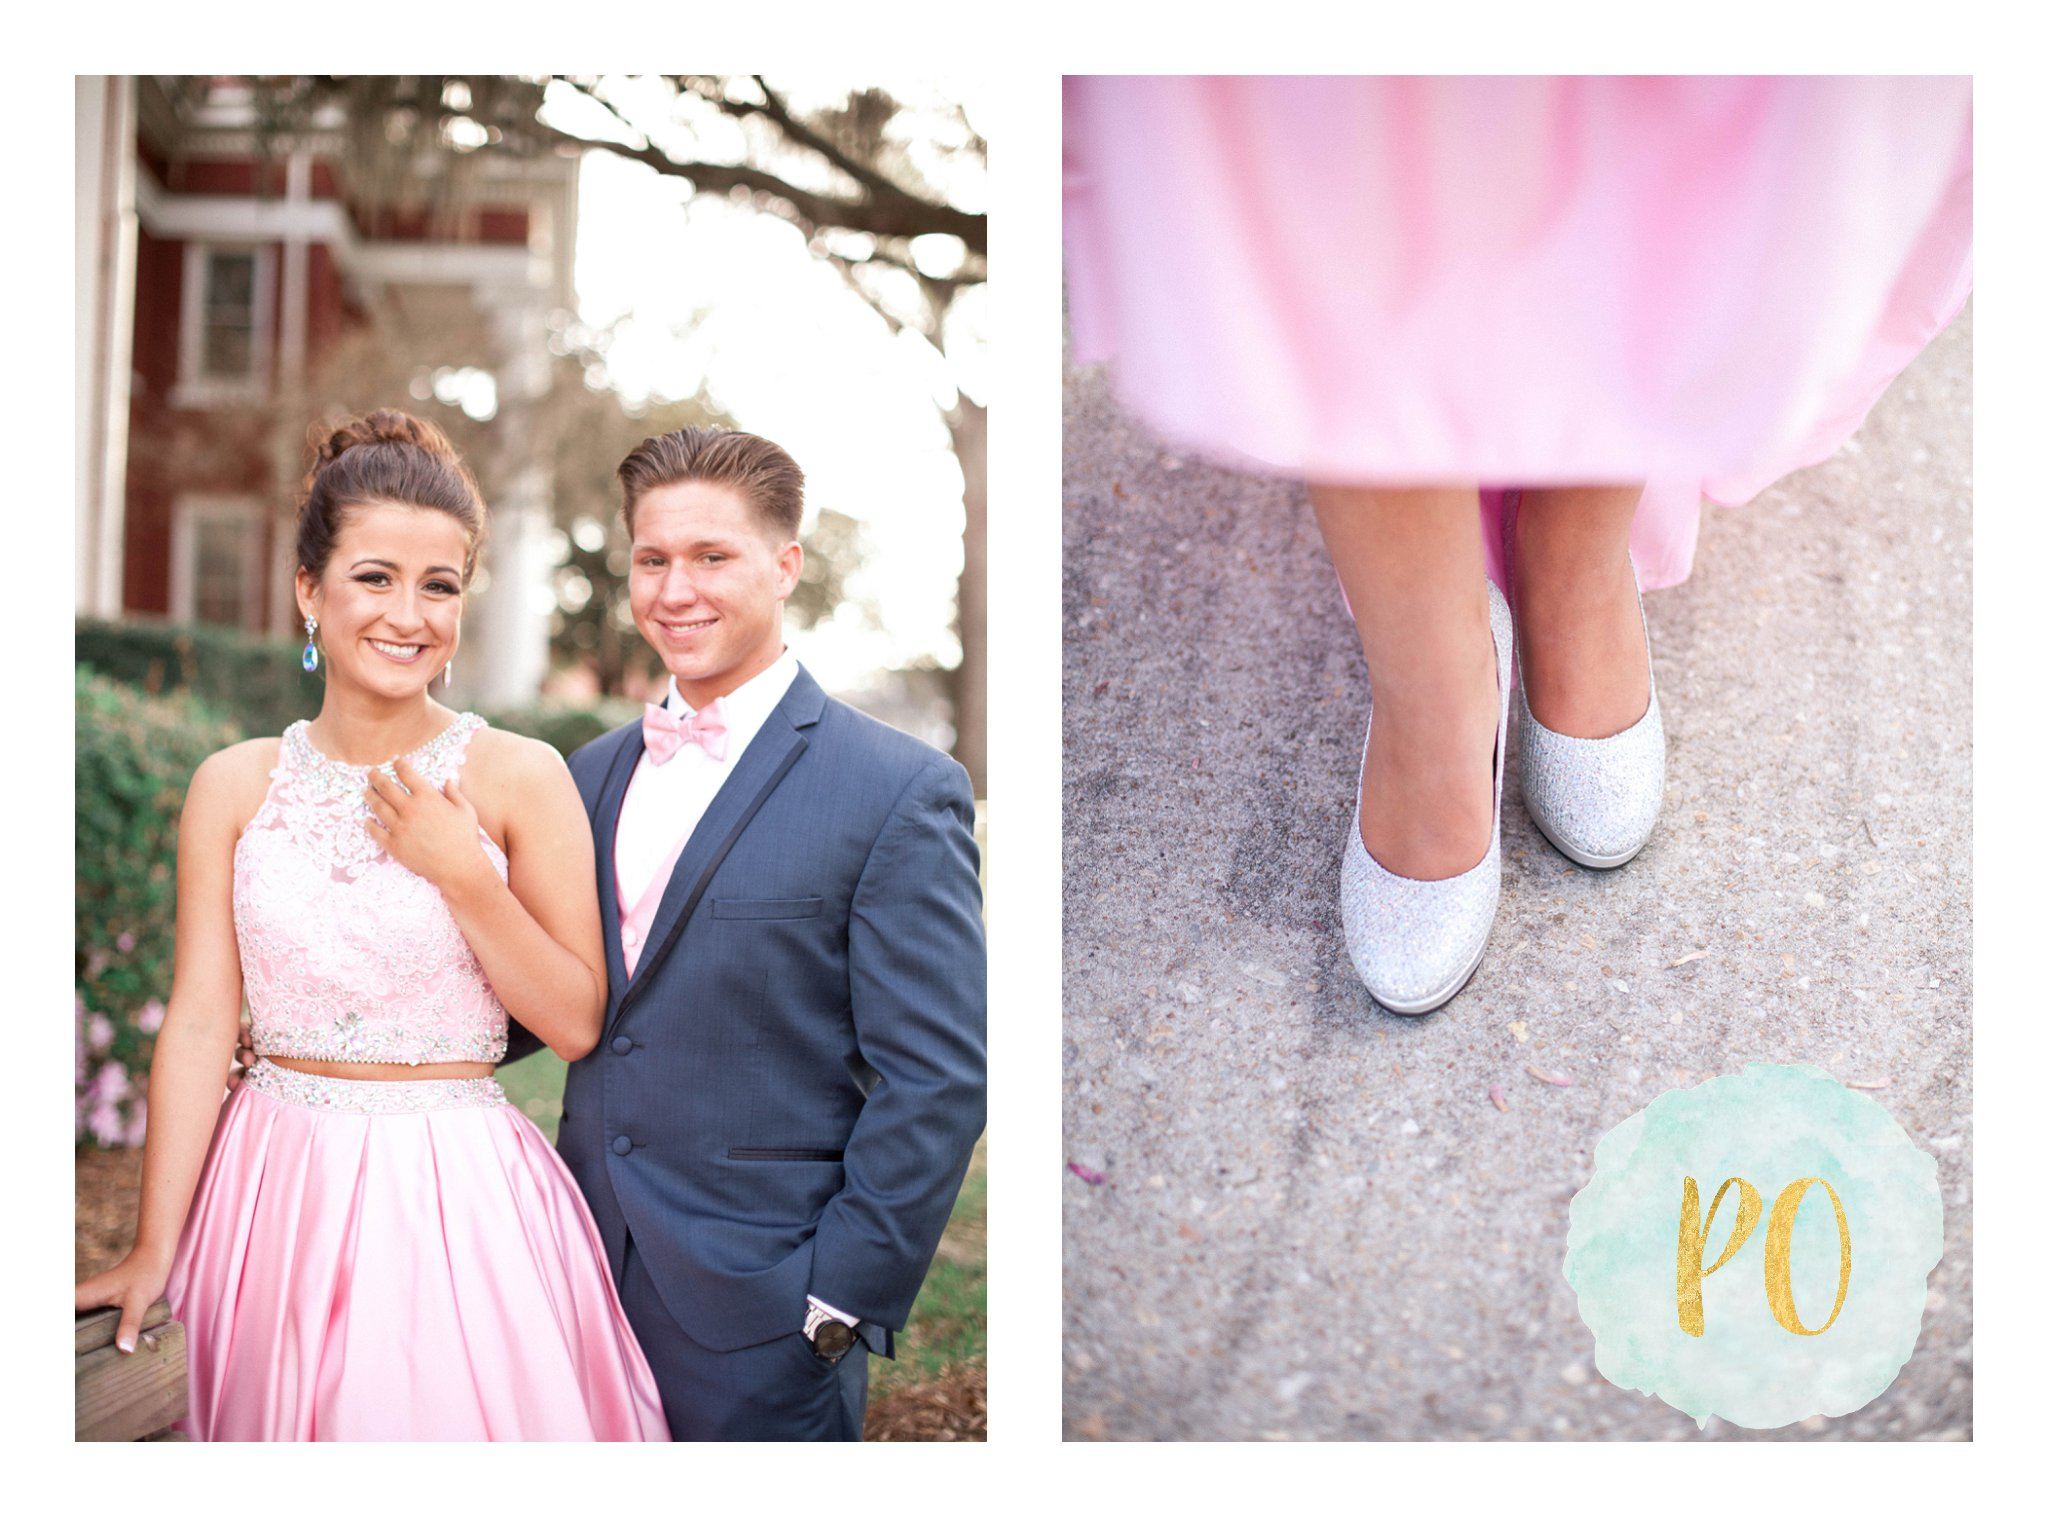 kylee_christian_prom_poured_out_photography-79_WEB.jpg